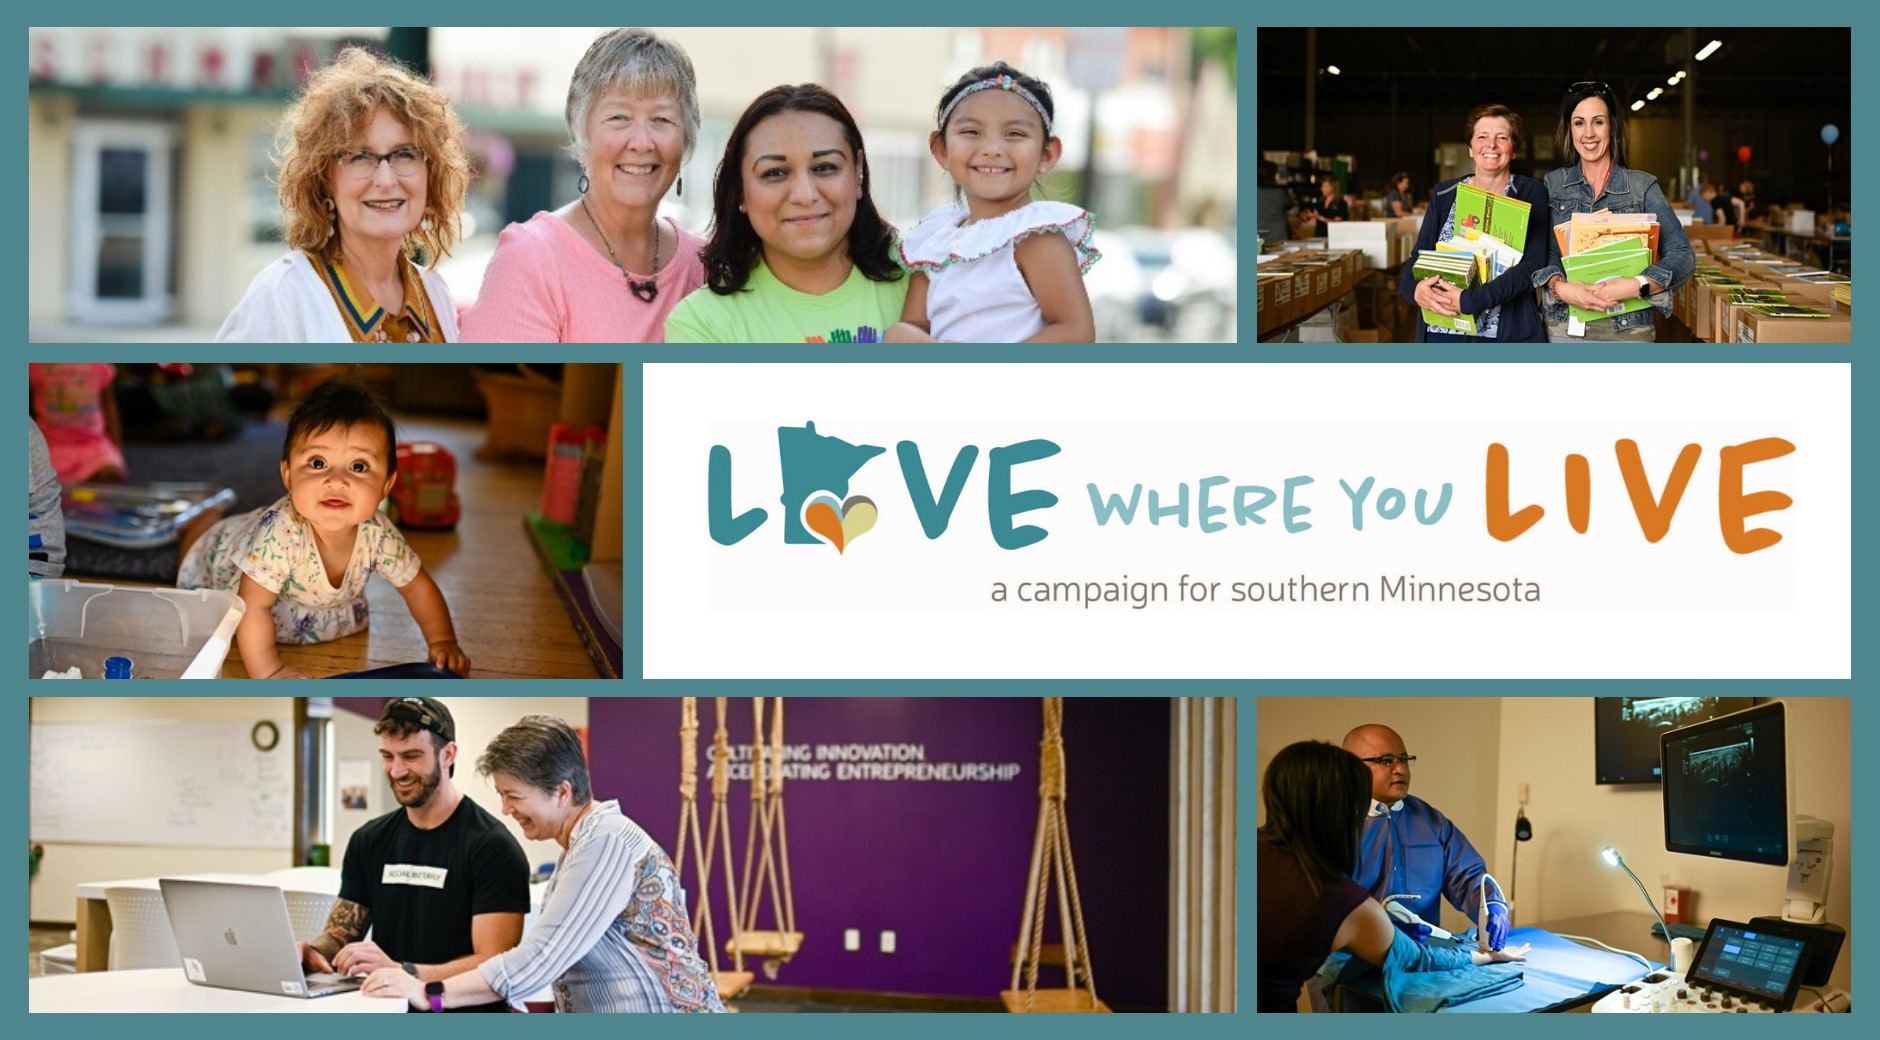 Love Where You Live - a campaign for southern Minnesota